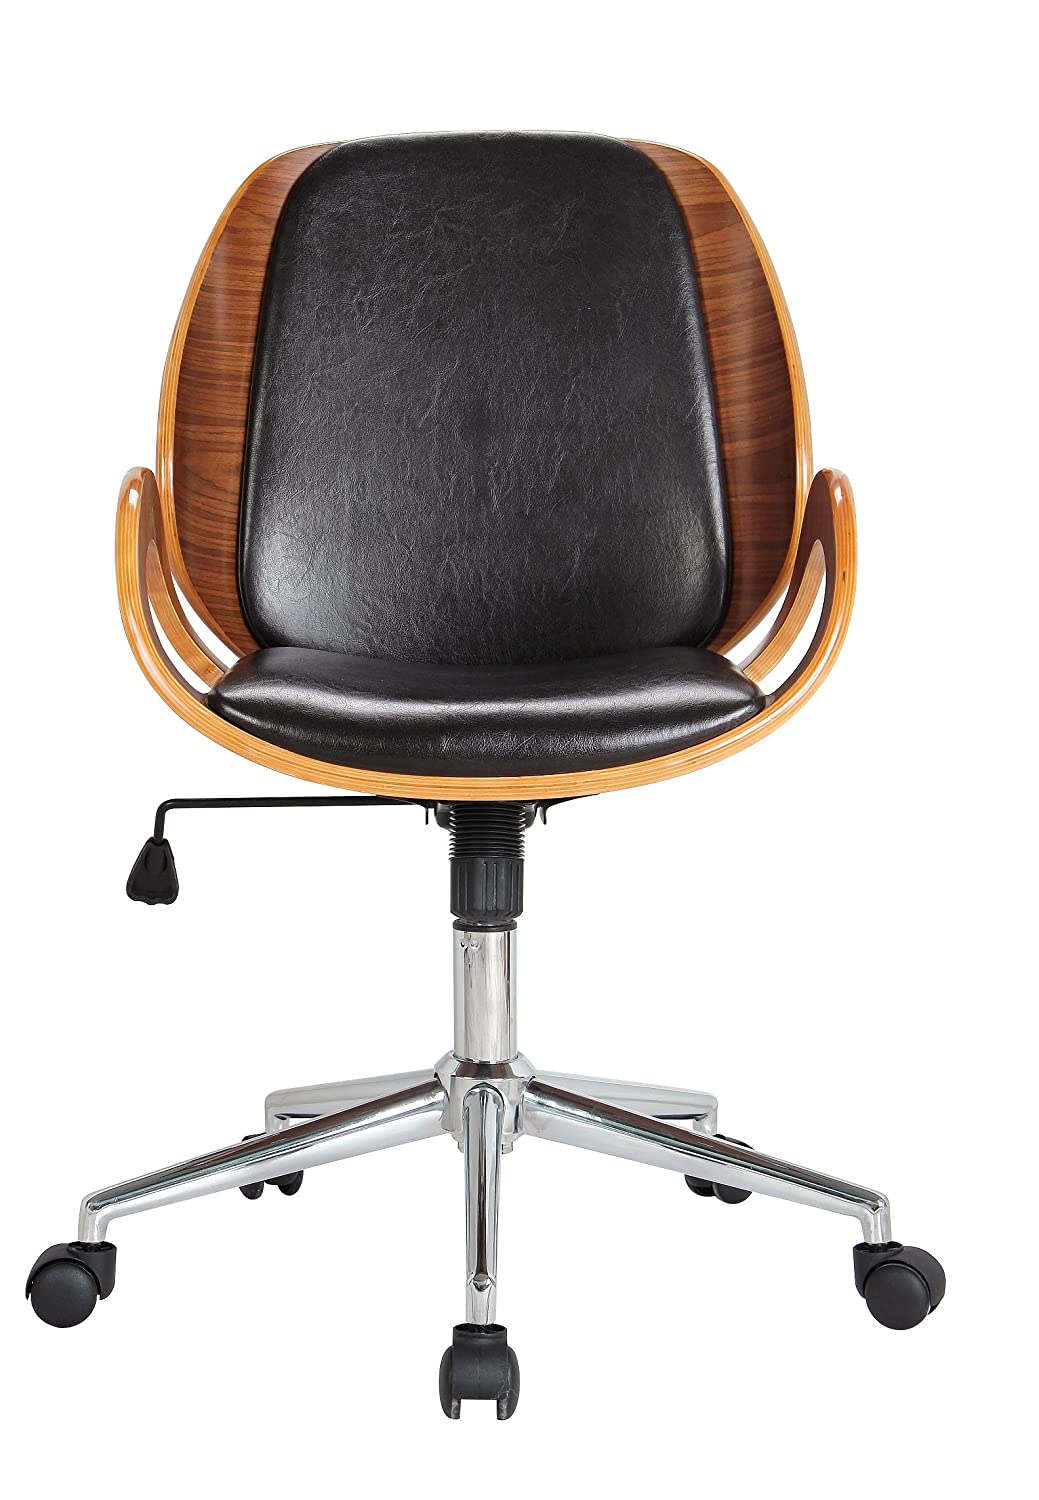 the leather office depot black chairs flash mesh chair furniture p desk home